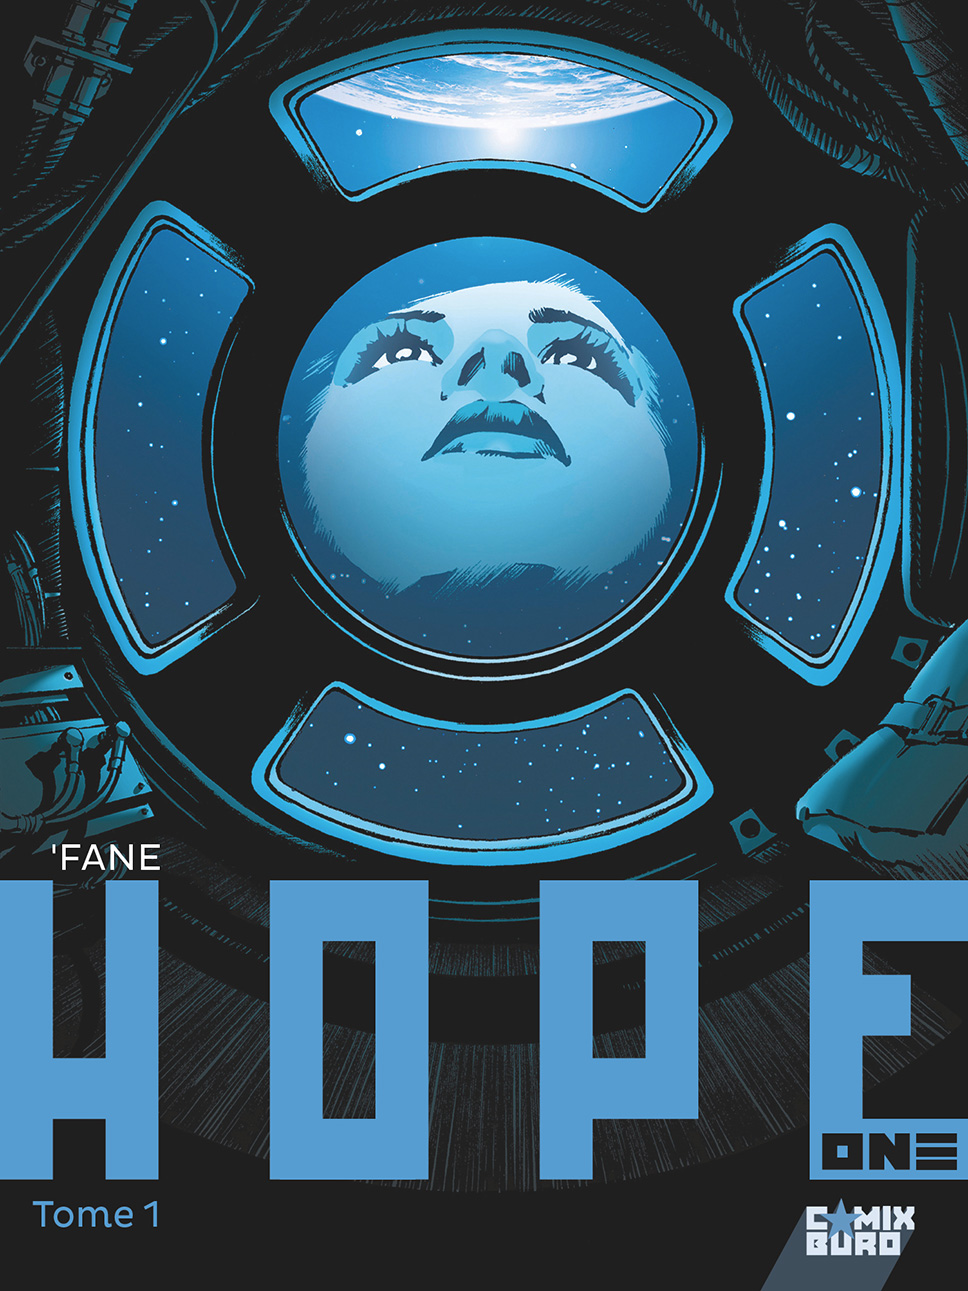 Couverture BD Hope One T1